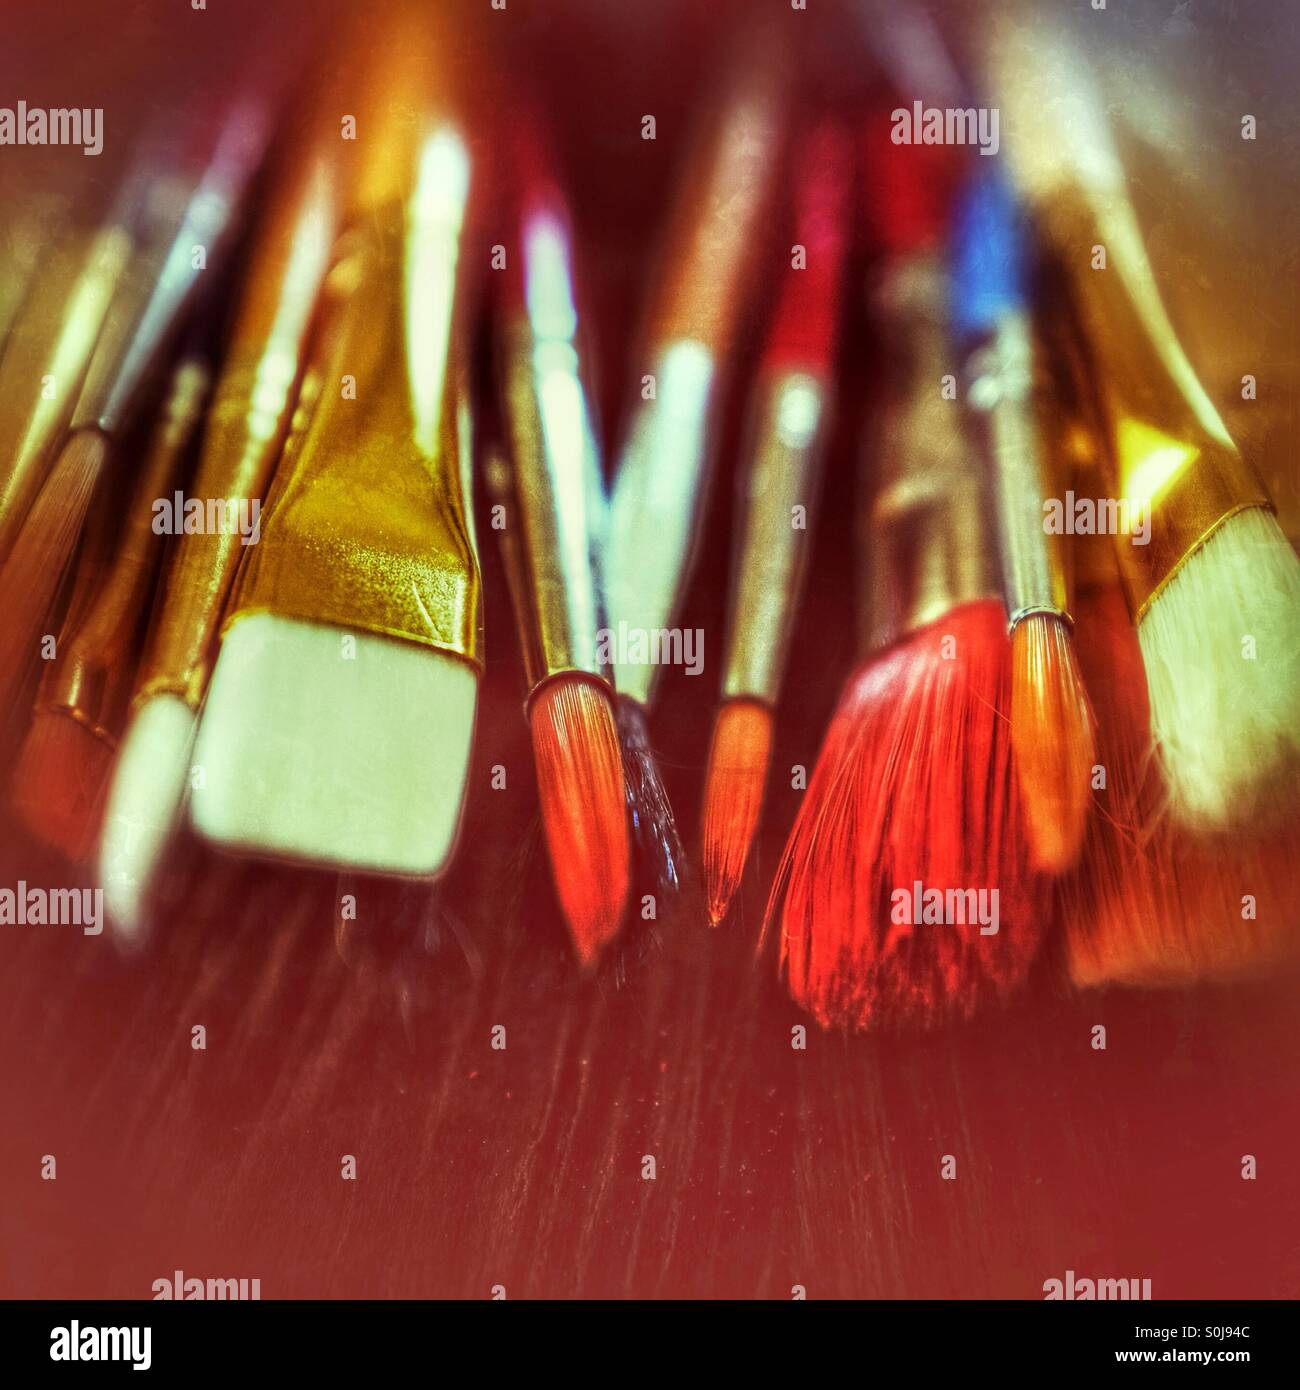 Paint brushes in an artist's studio - Stock Image